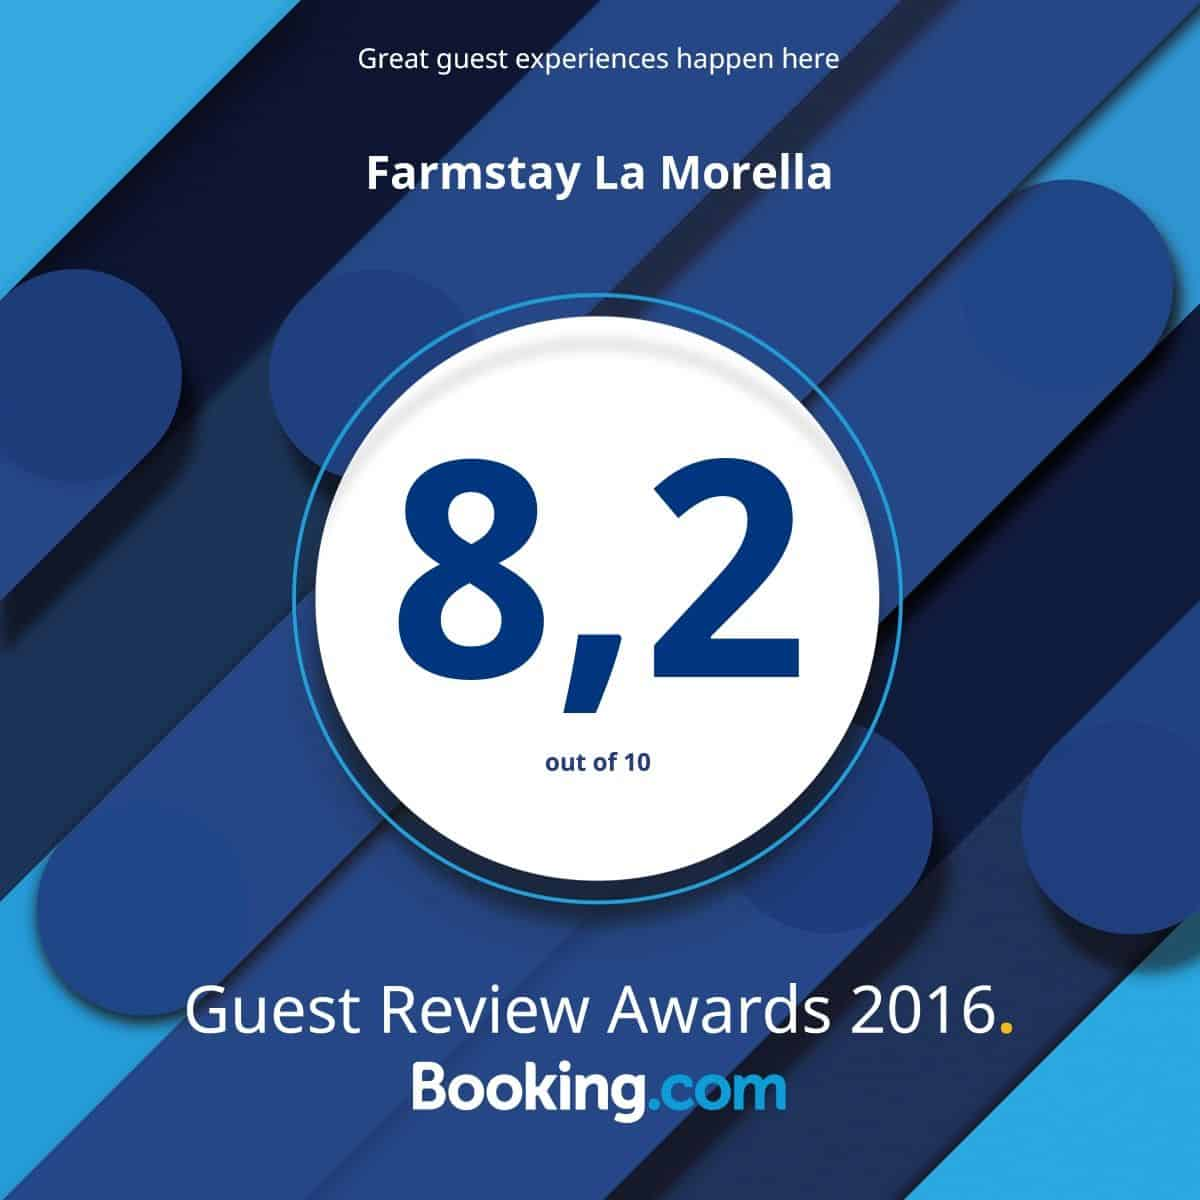 La Morella riceve il Guest Review Awards 2016 da Booking.com